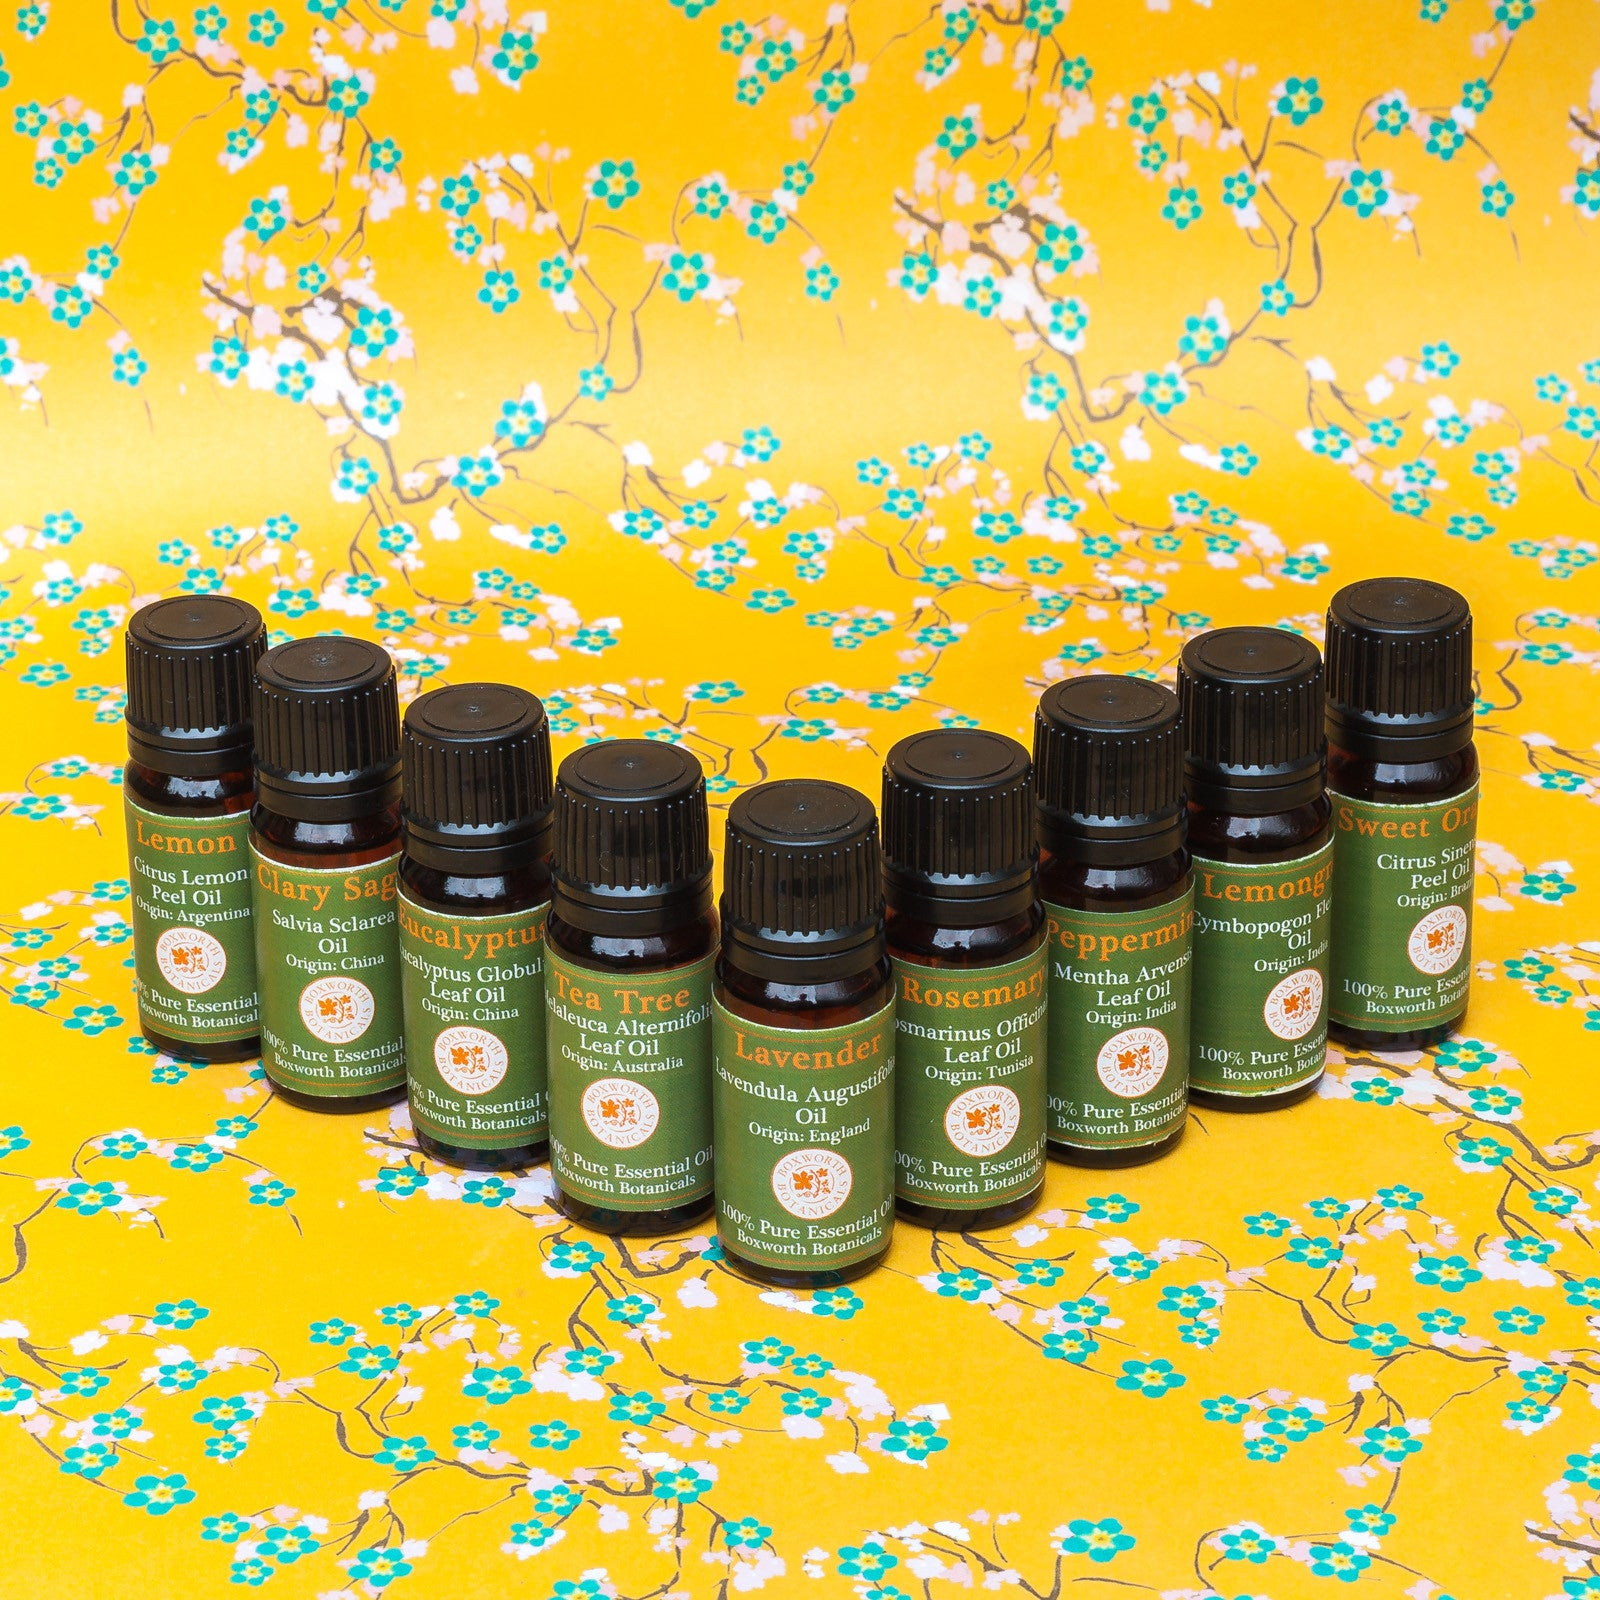 Where To Buy Essential Oils? Try Boxworth Botanicals